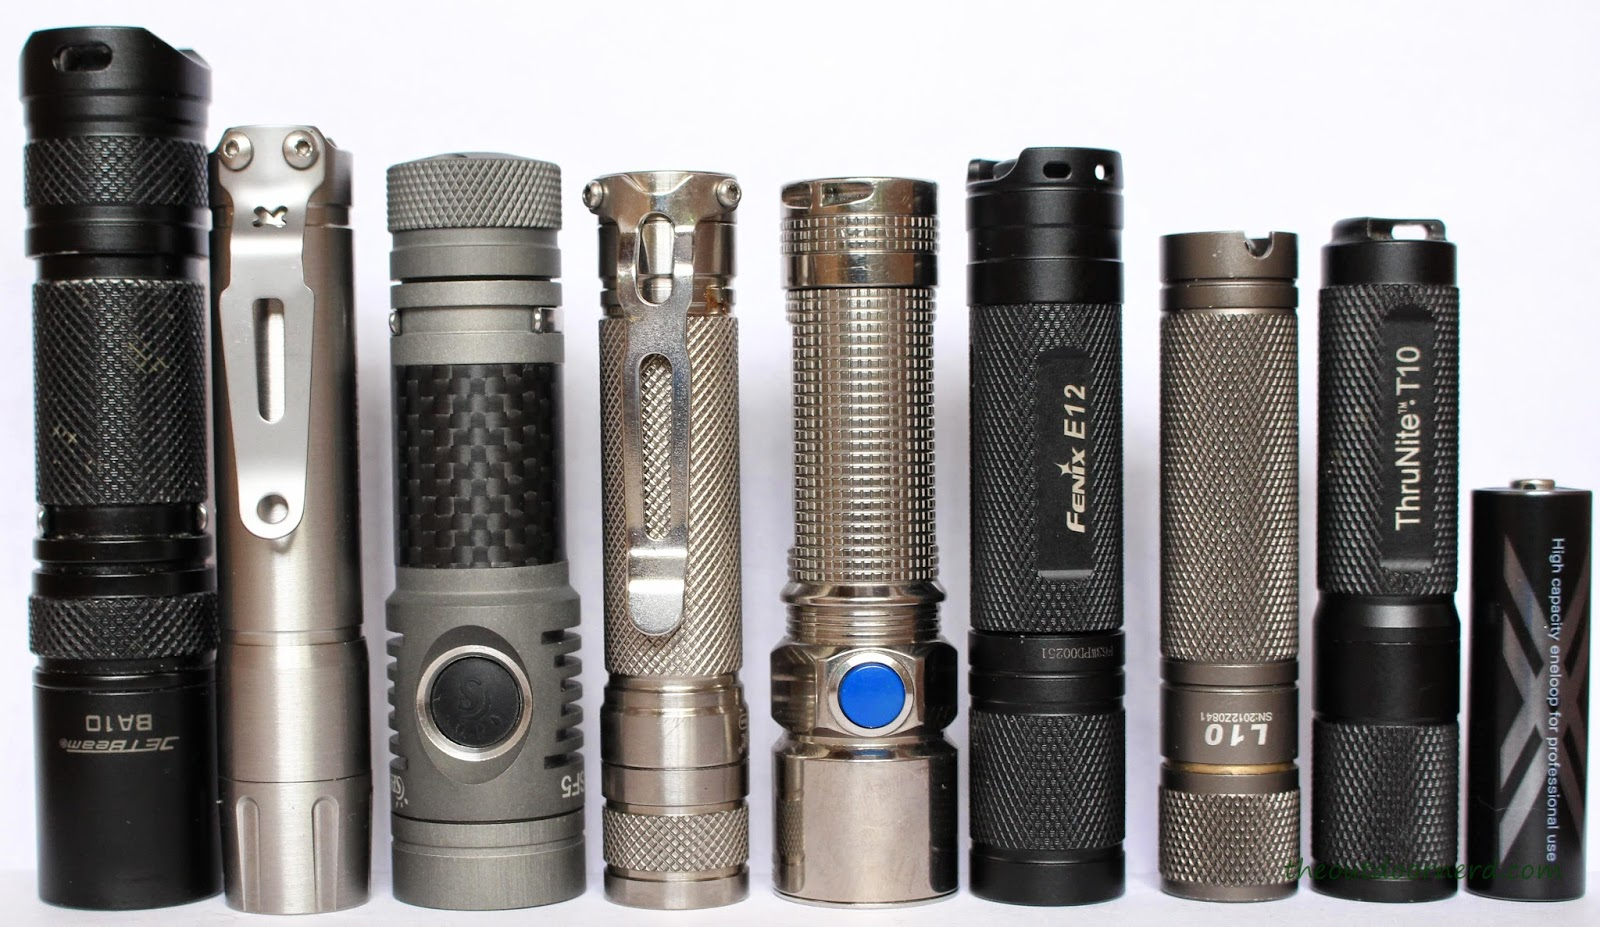 From Left: Jetbeam BA10, Thrunite T10S, Spark SF5 NW, EagleTac D25A Ti, Olight S15 Ti, Fenix E12, L3 L10, Thrunite T10, Eneloop Pro AA